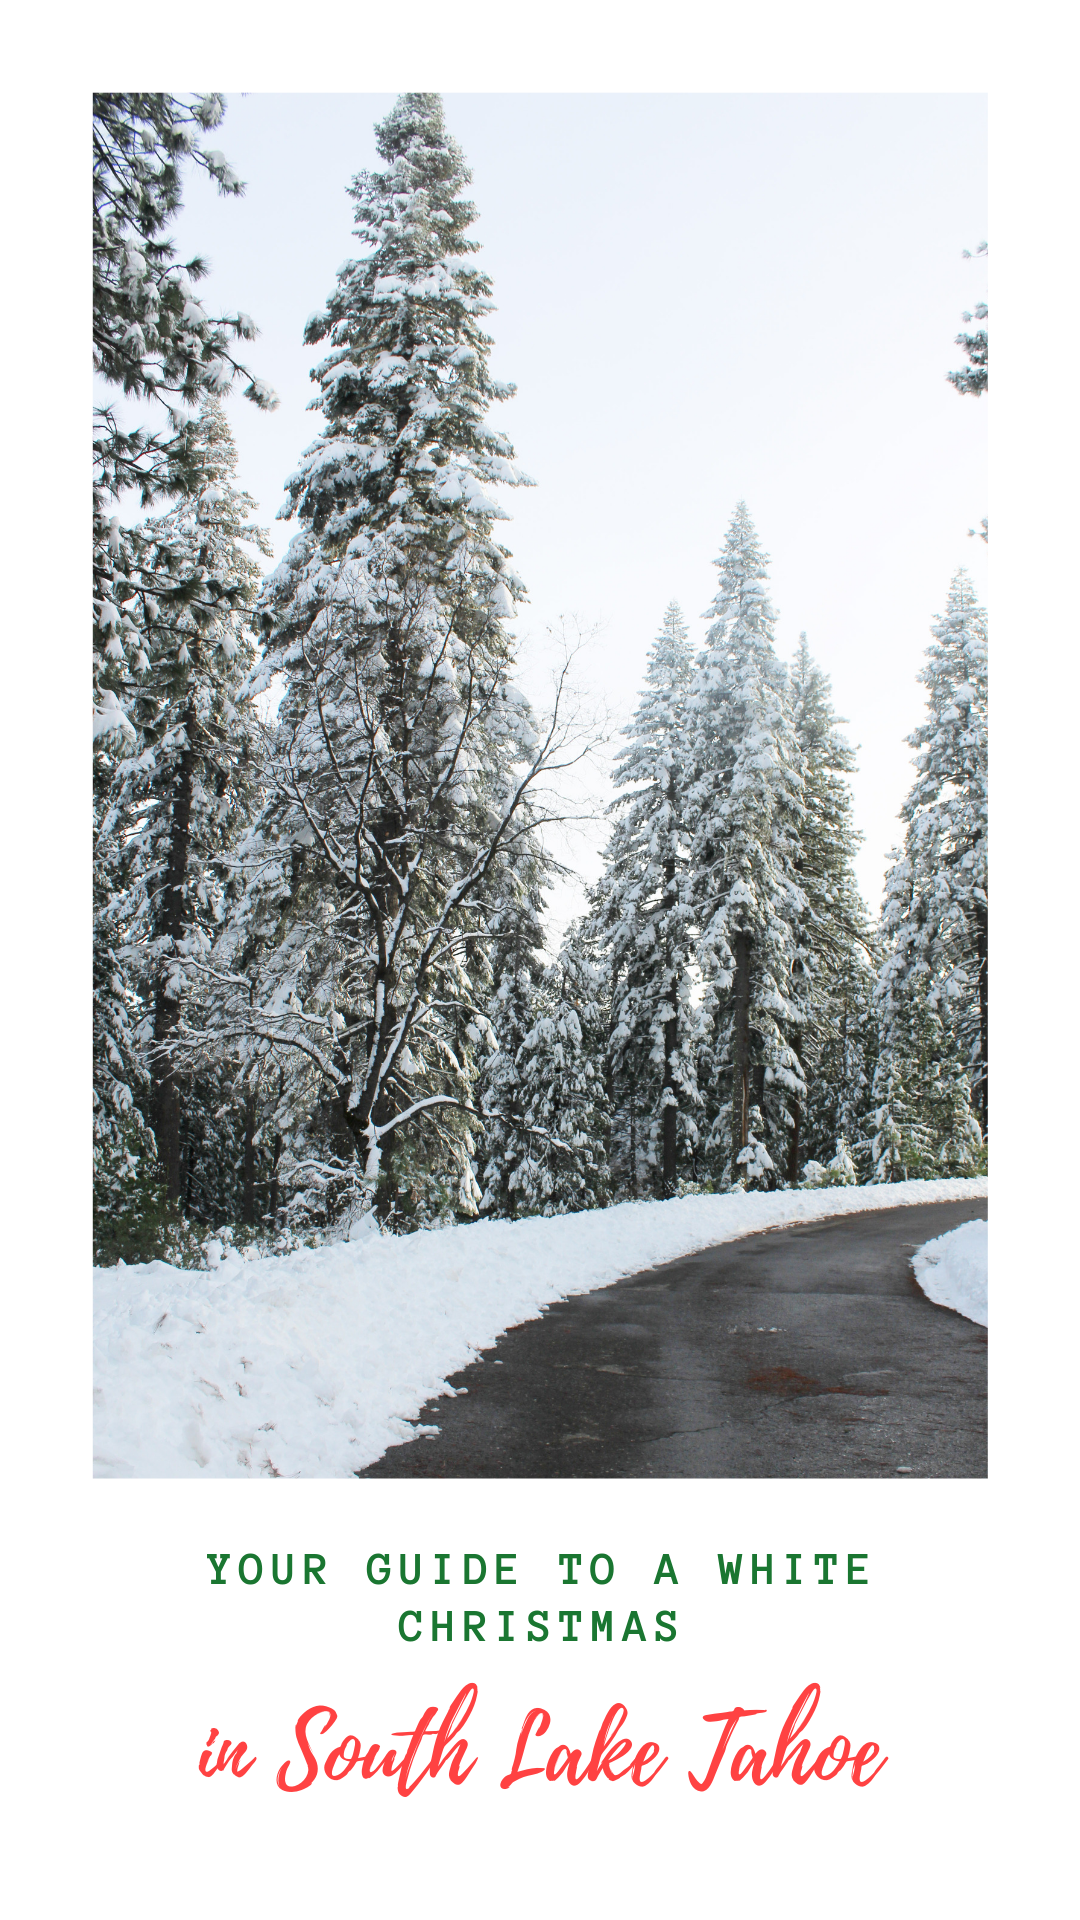 Your Guide to a White Christmas in South Lake Tahoe